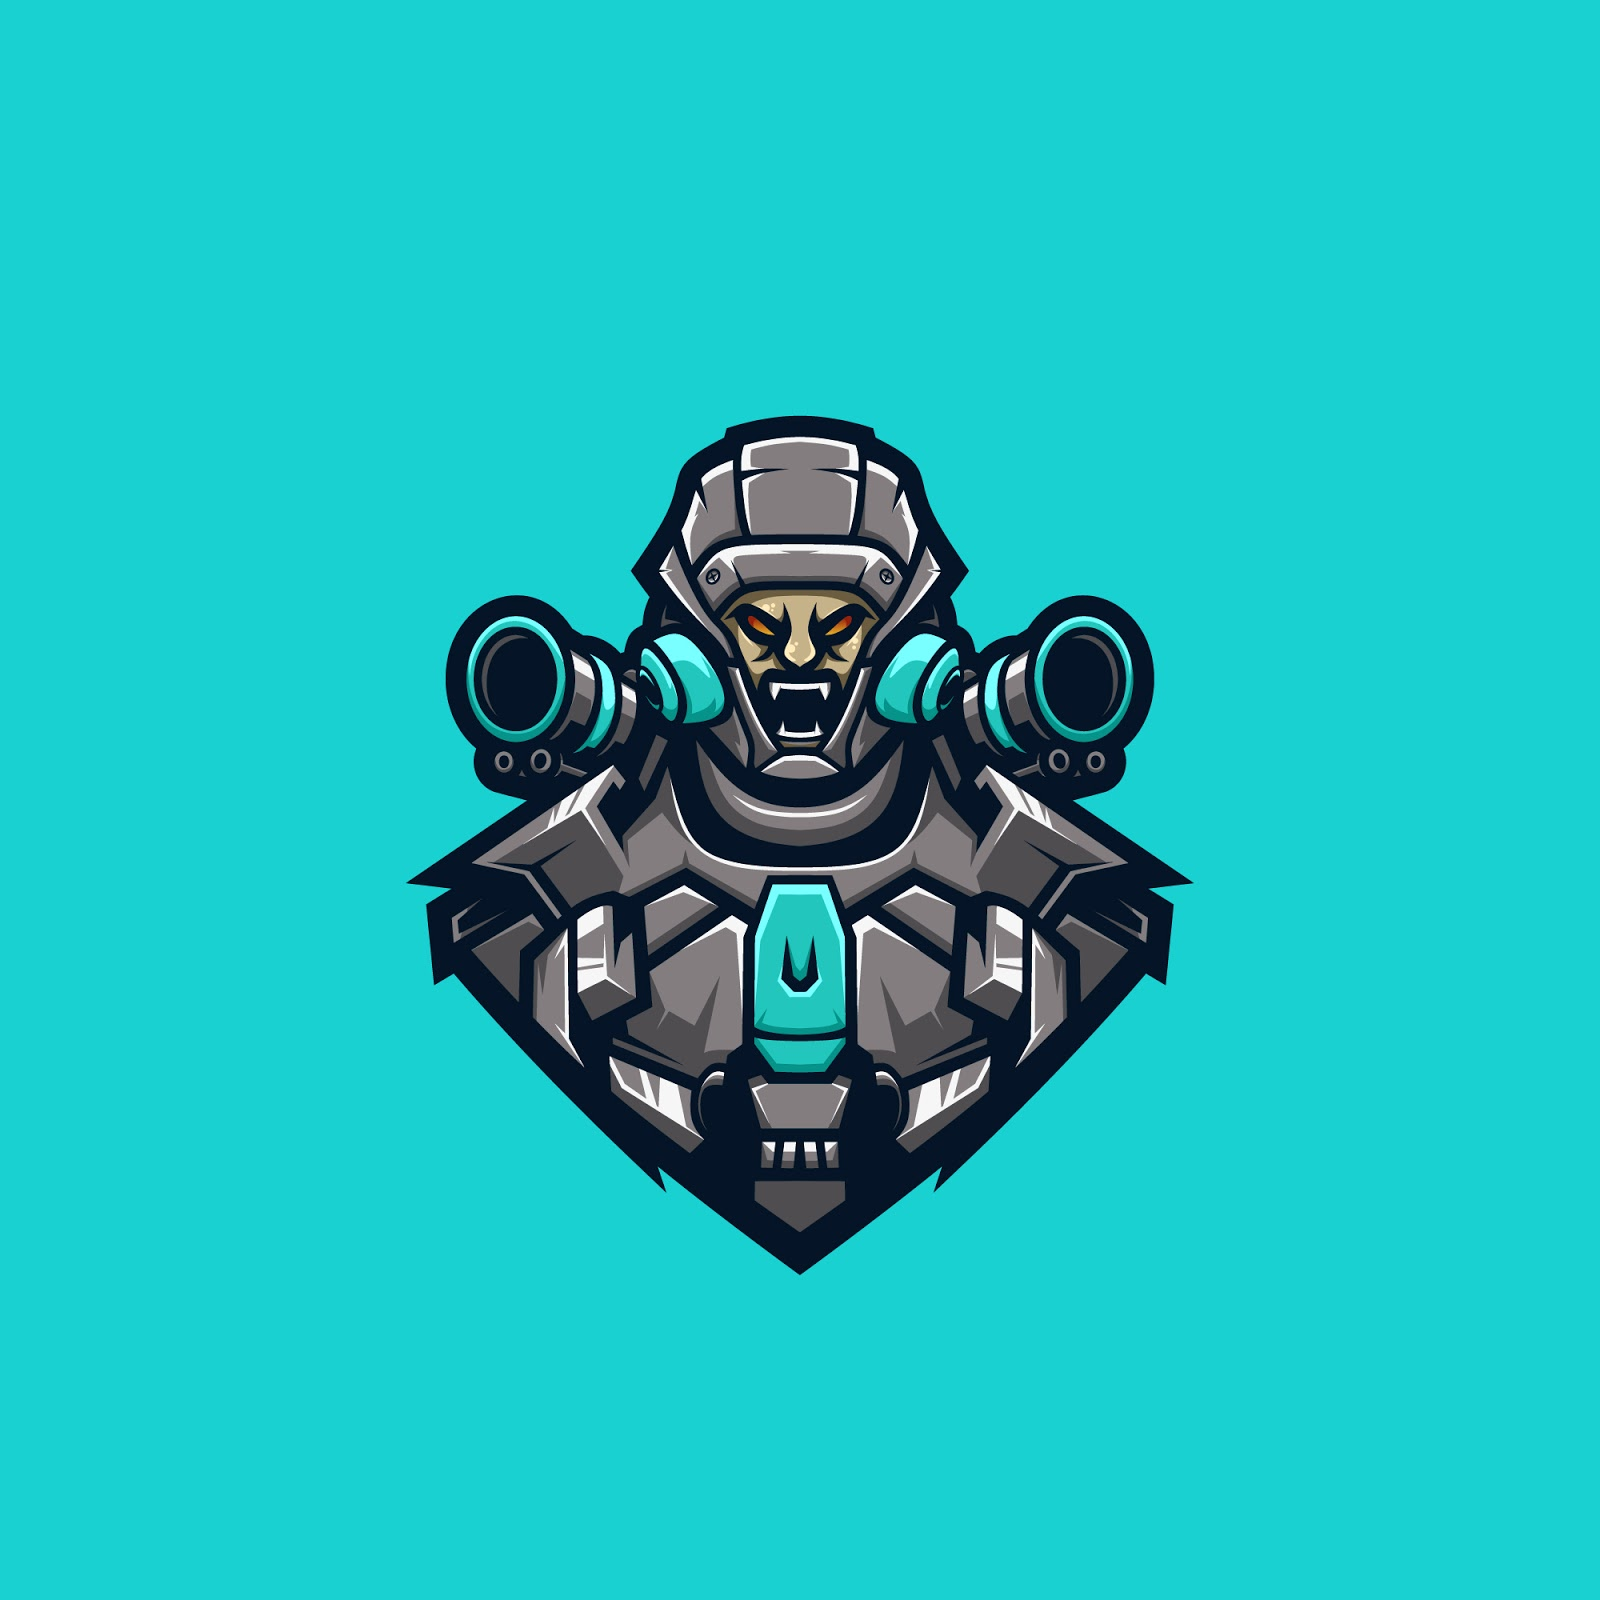 Cyborg Fighter Premium Logo Free Download Vector CDR, AI, EPS and PNG Formats